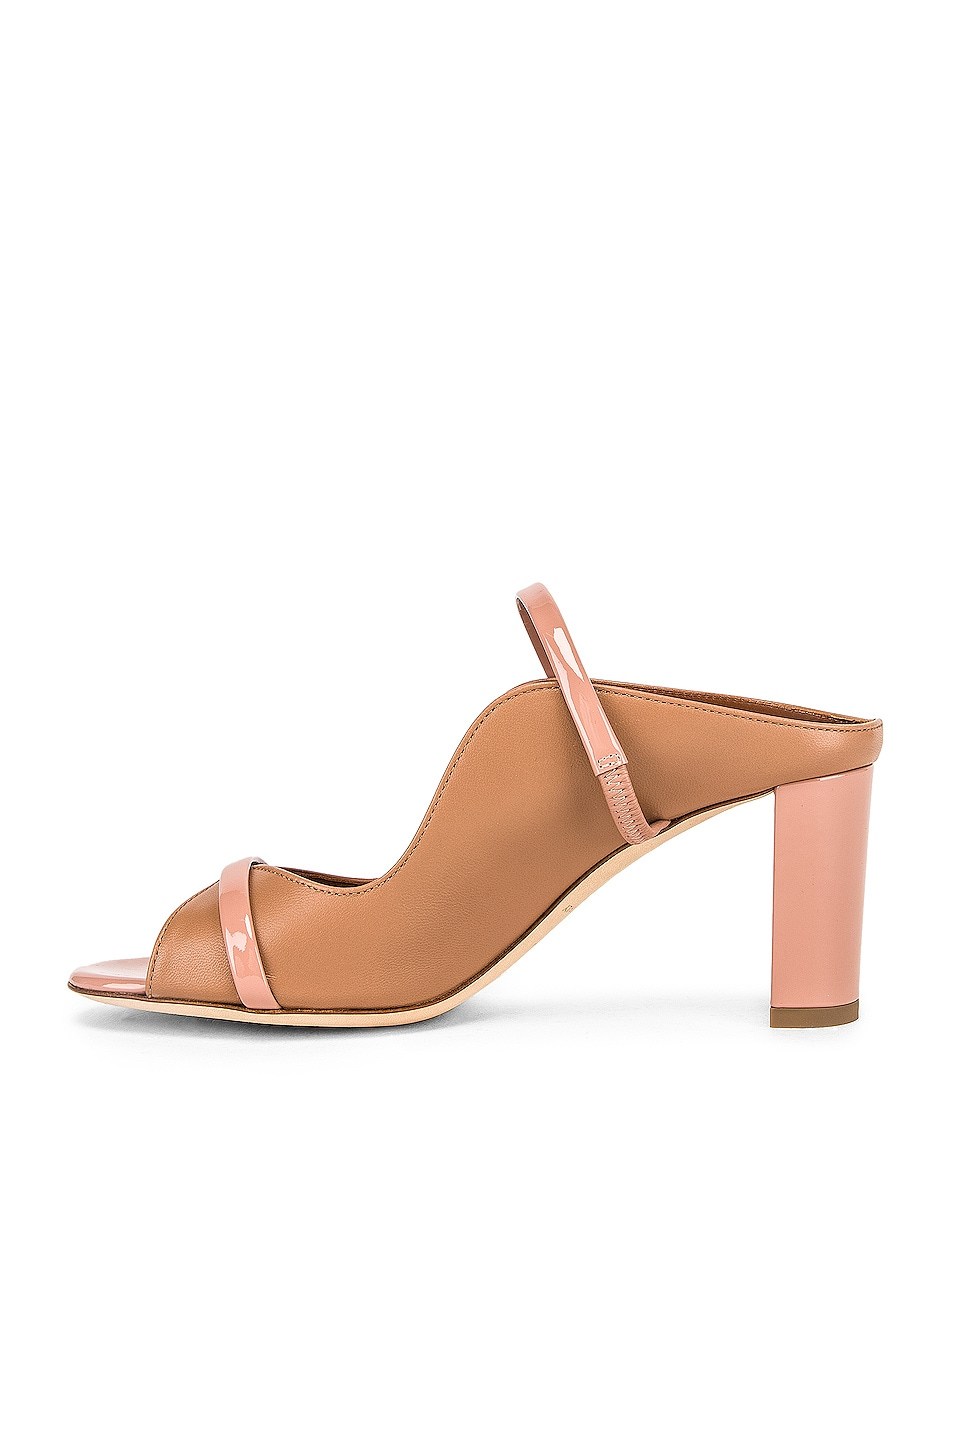 Image 5 of Malone Souliers Nora Heel in Nude & Blush